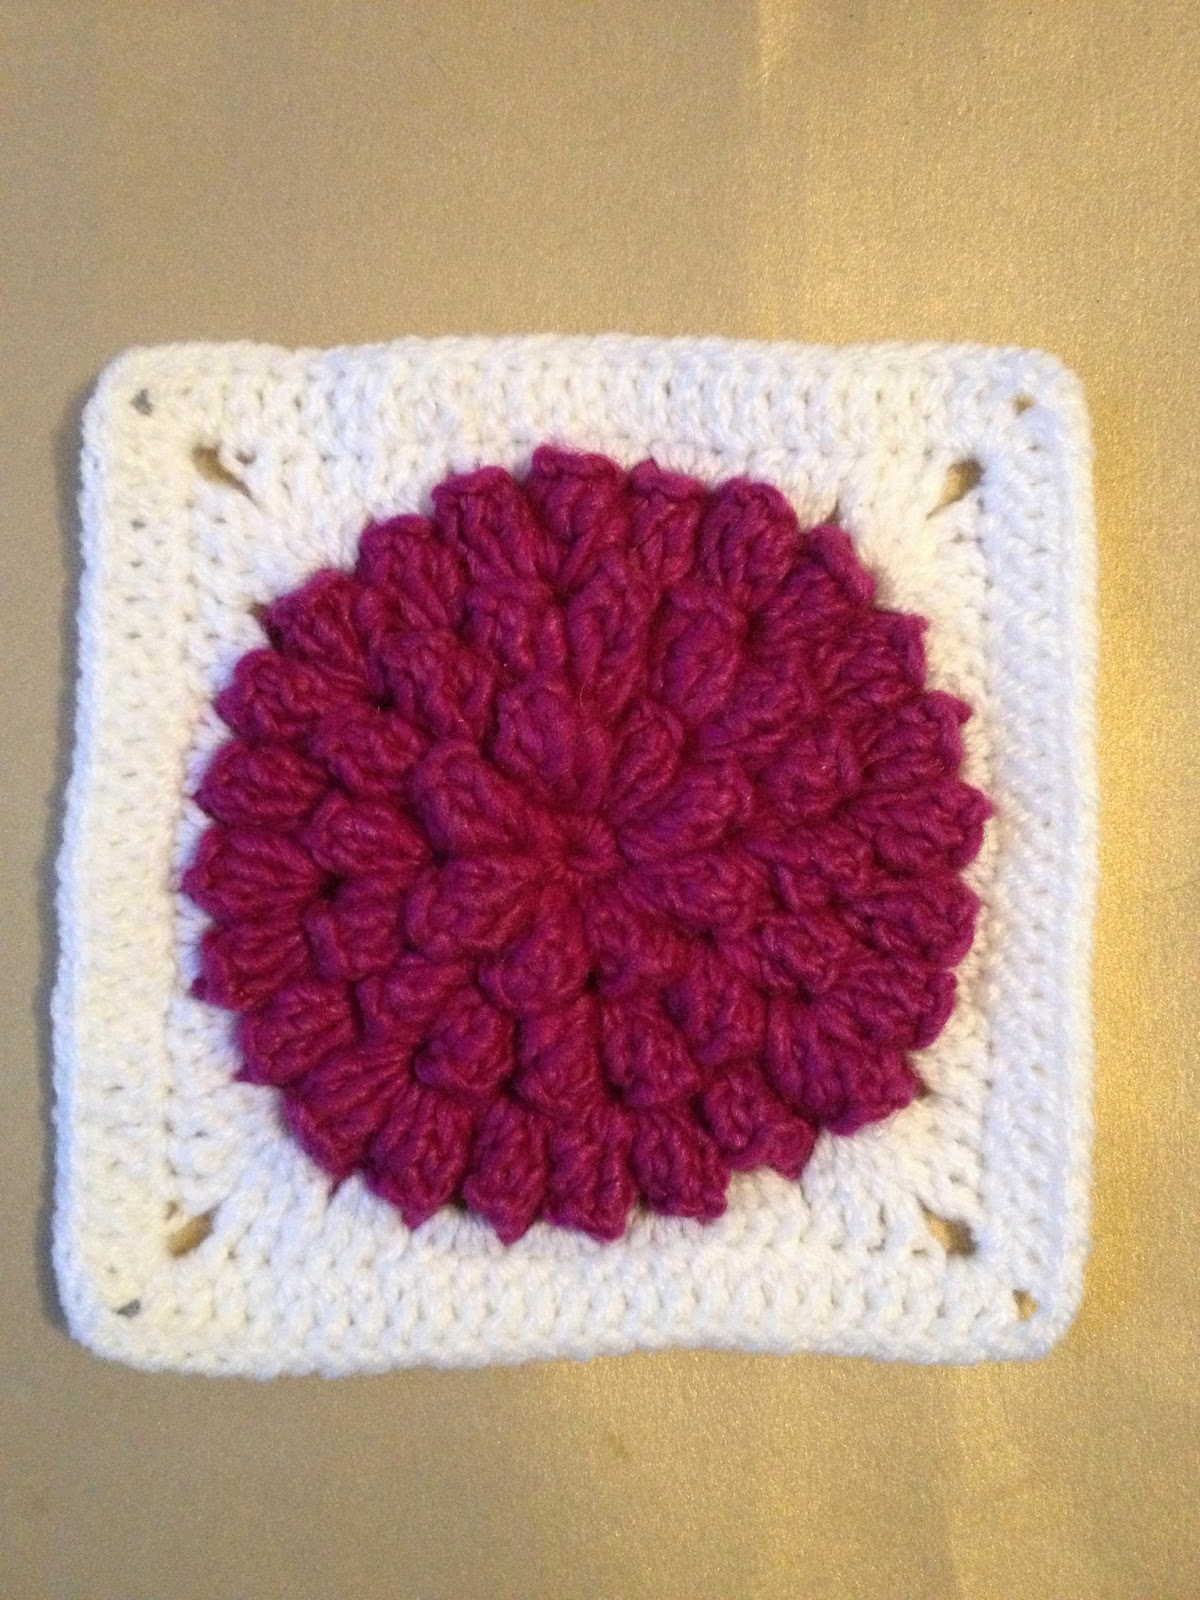 365 Granny Squares Project: Popcorn flower.....